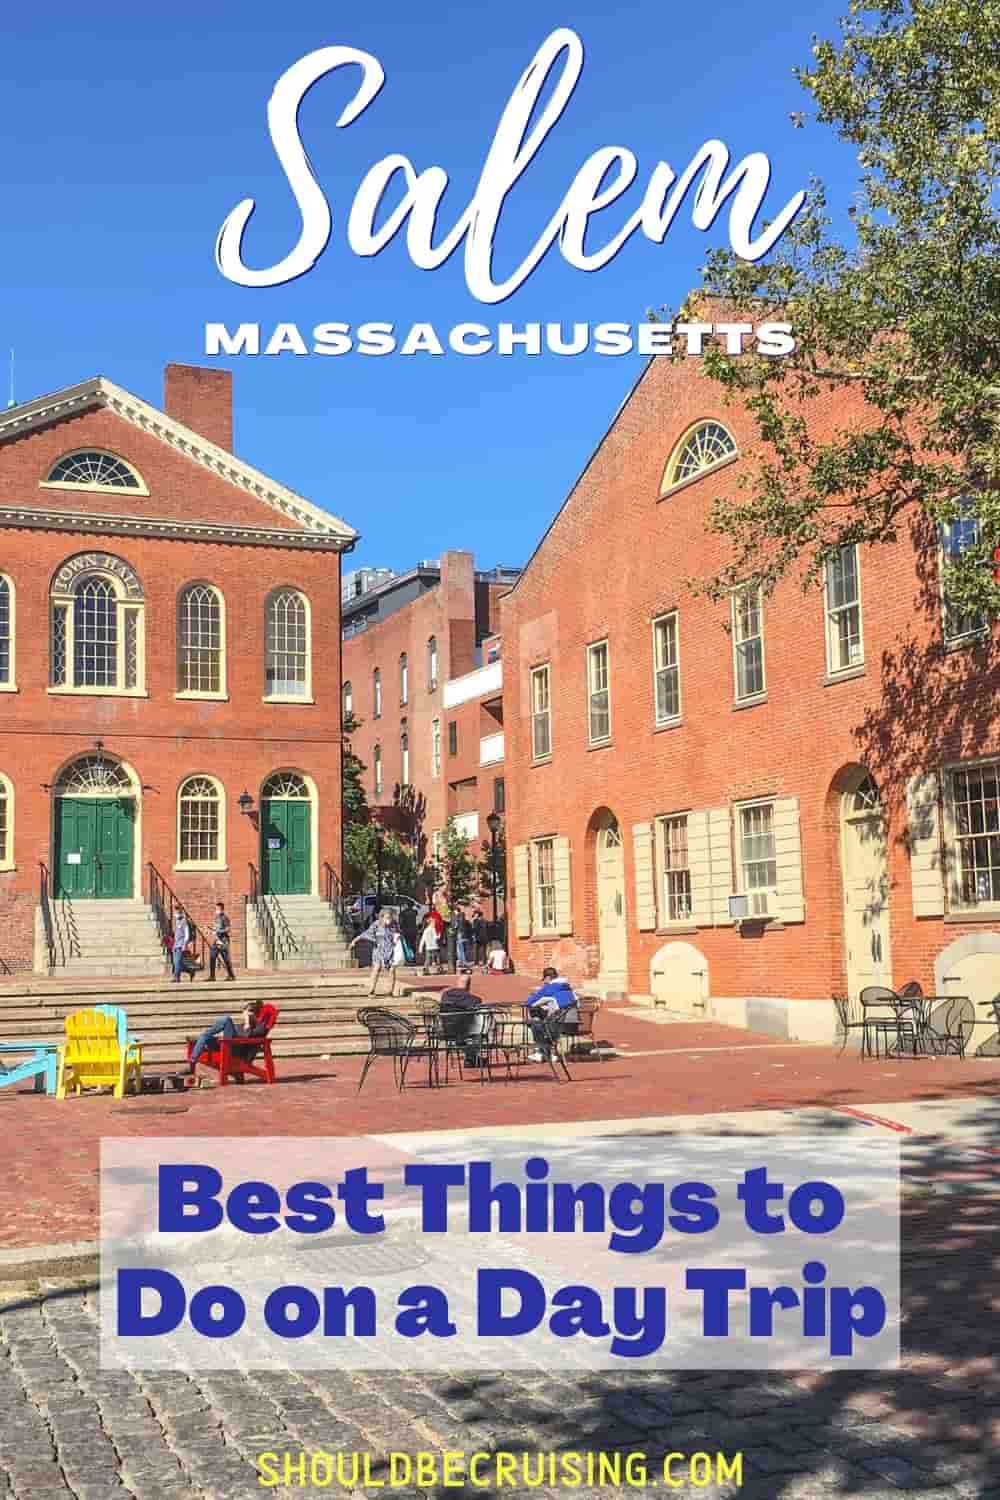 Top Things to Do in Salem Massachusetts in 2021